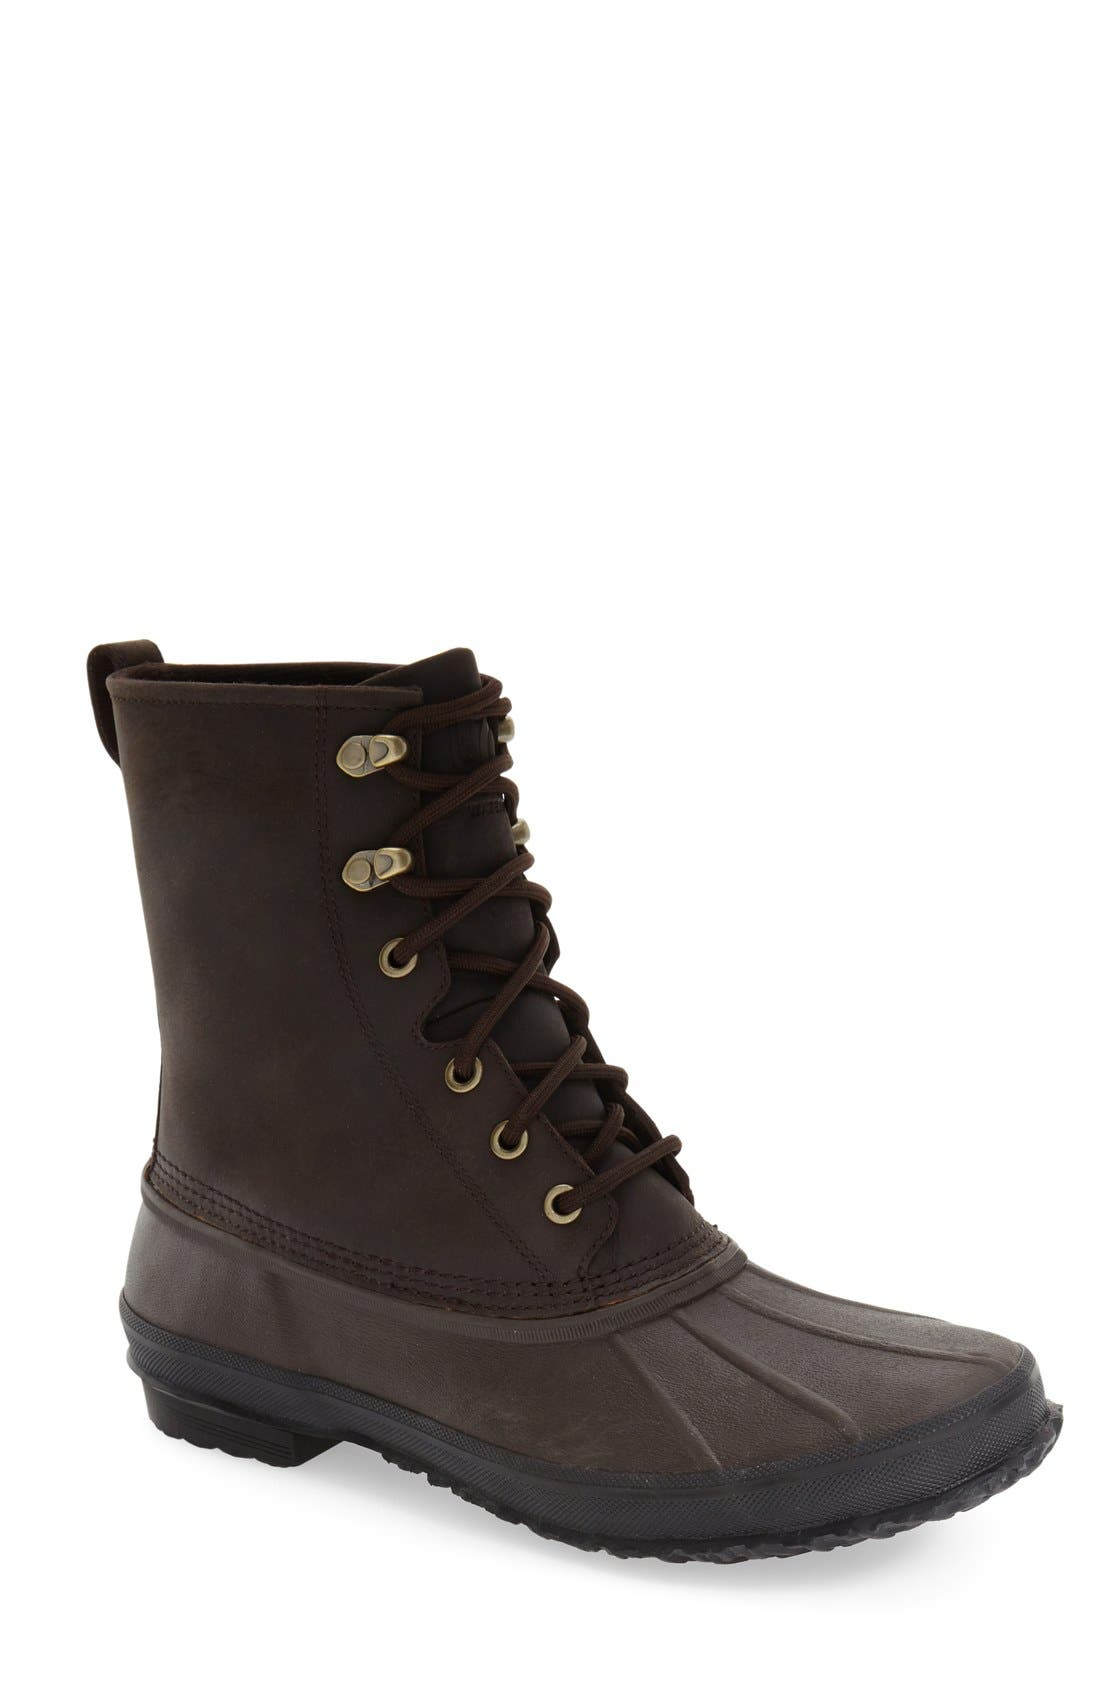 Alternate Image 1 Selected - UGG® Yucca Rain Boot (Men)